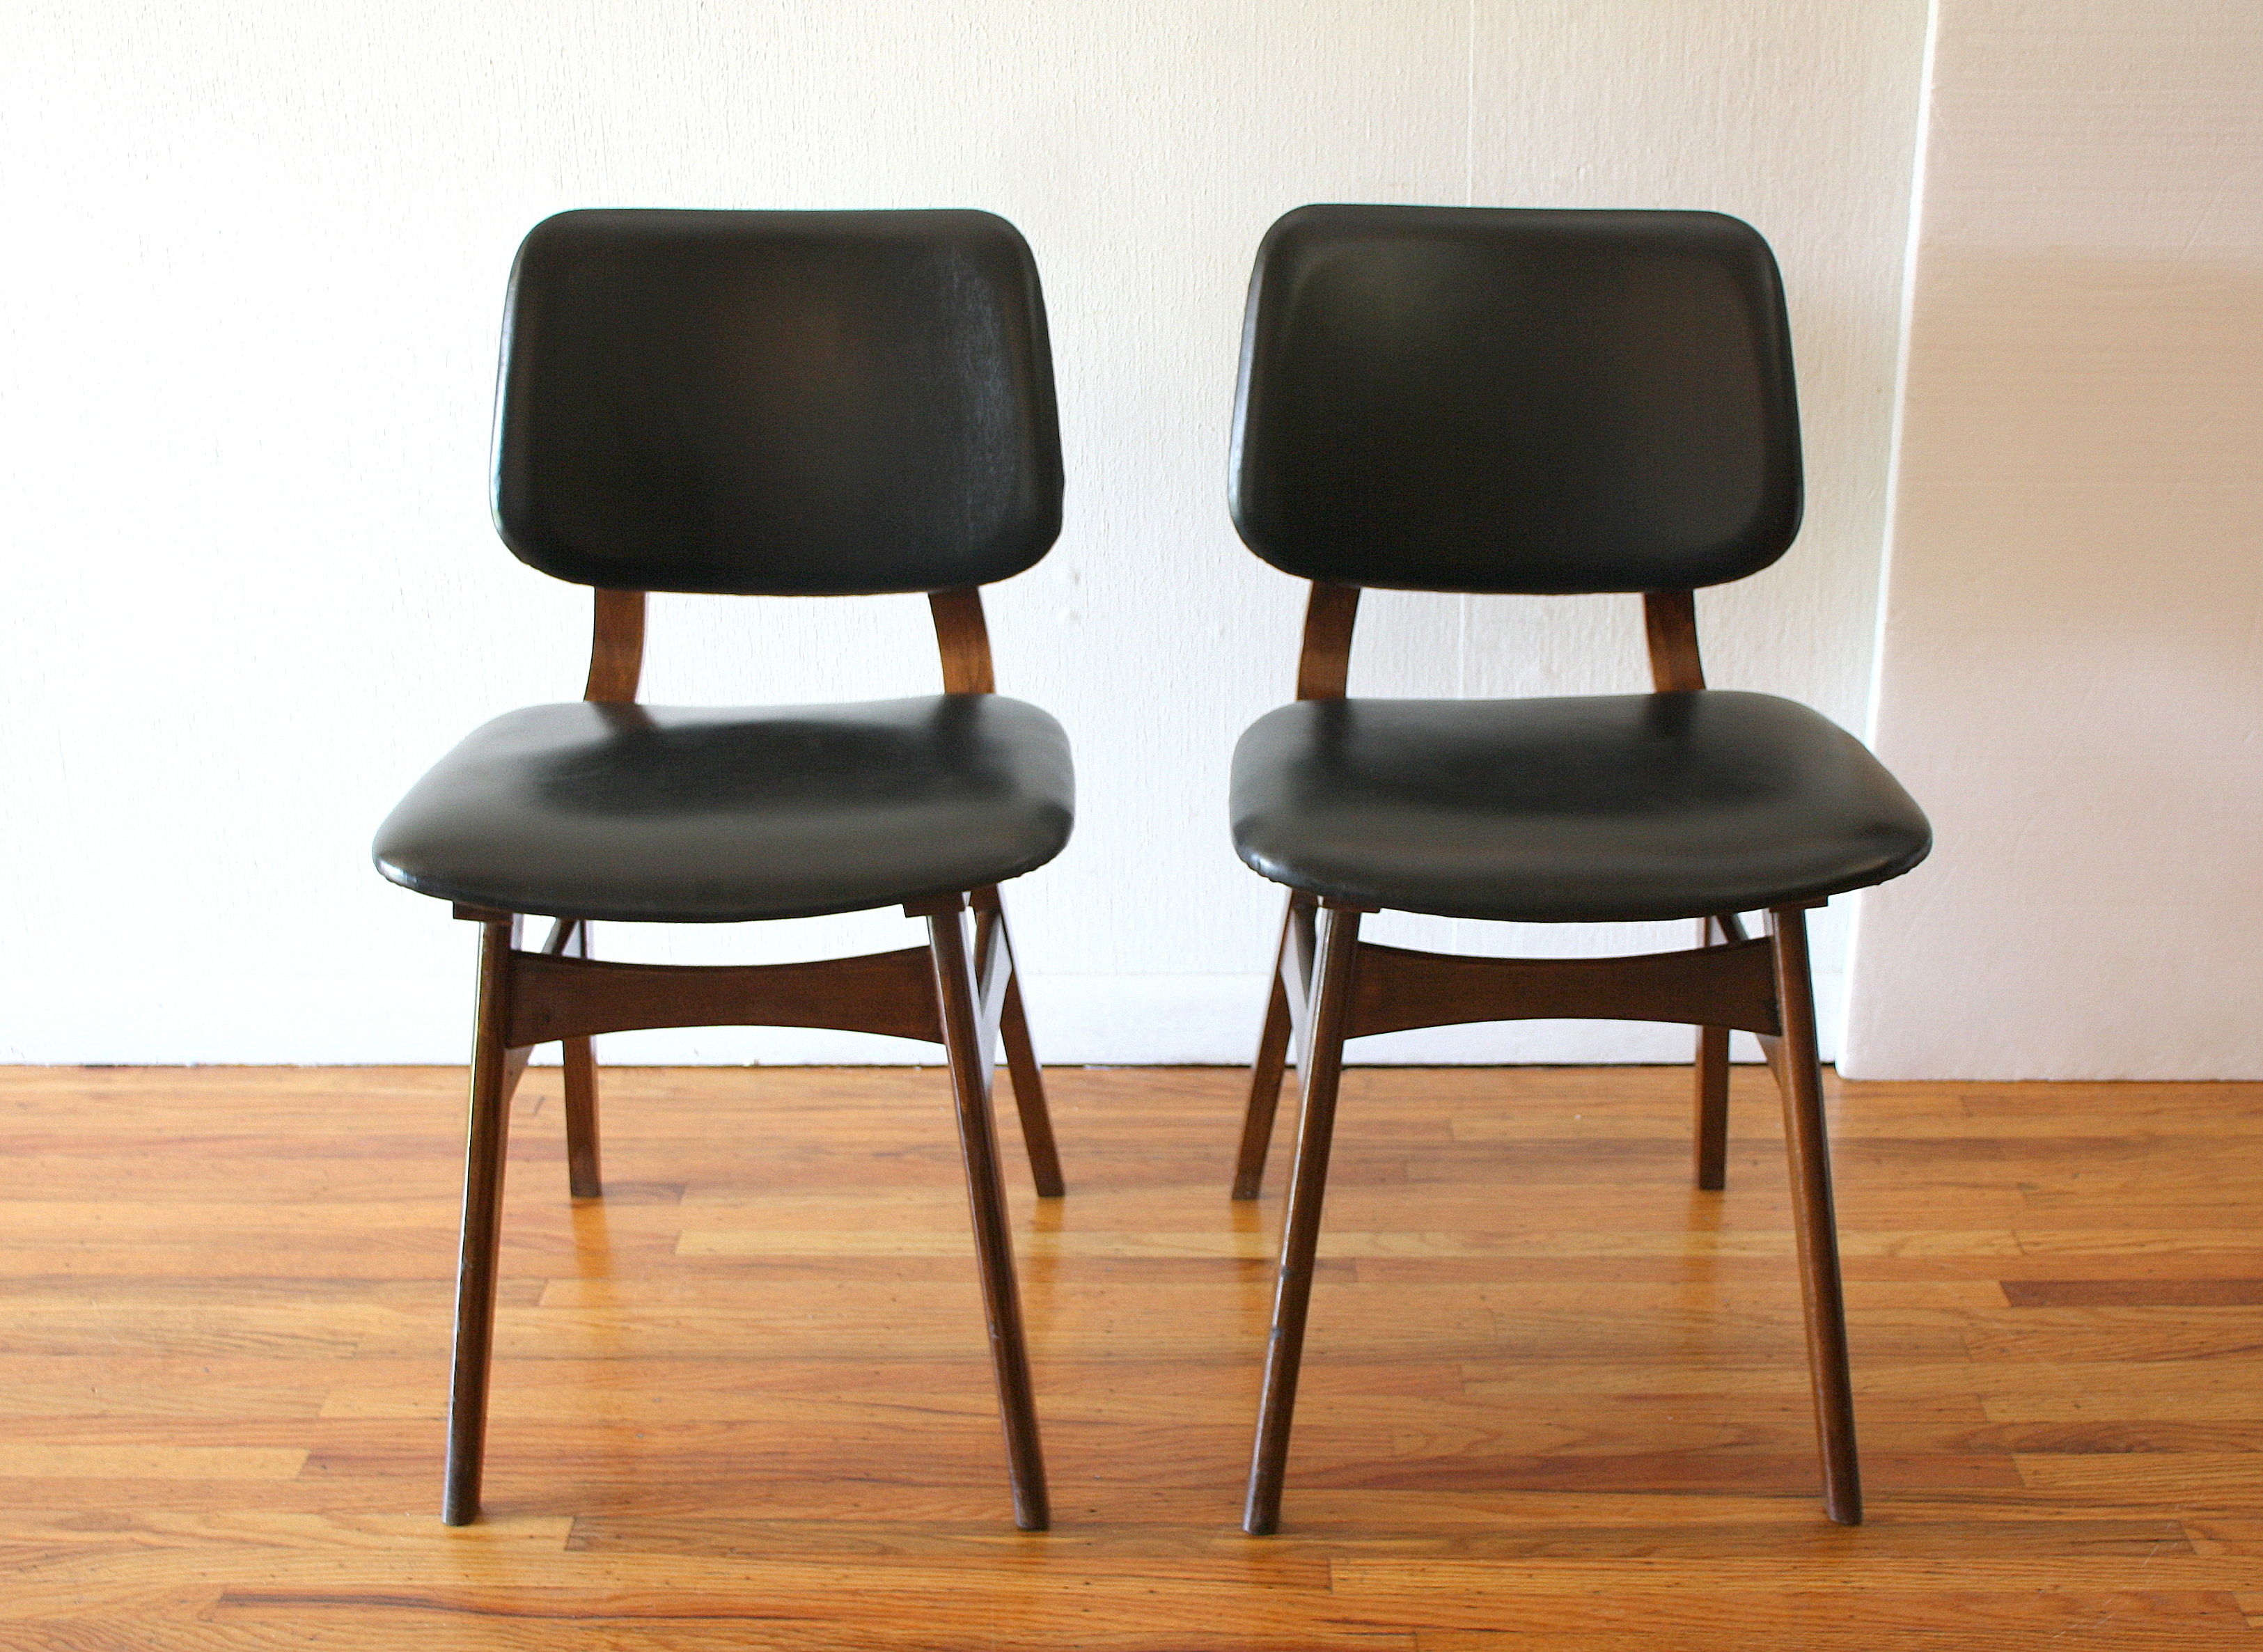 Mcm pair of black naugahyde side chairs 1.JPG